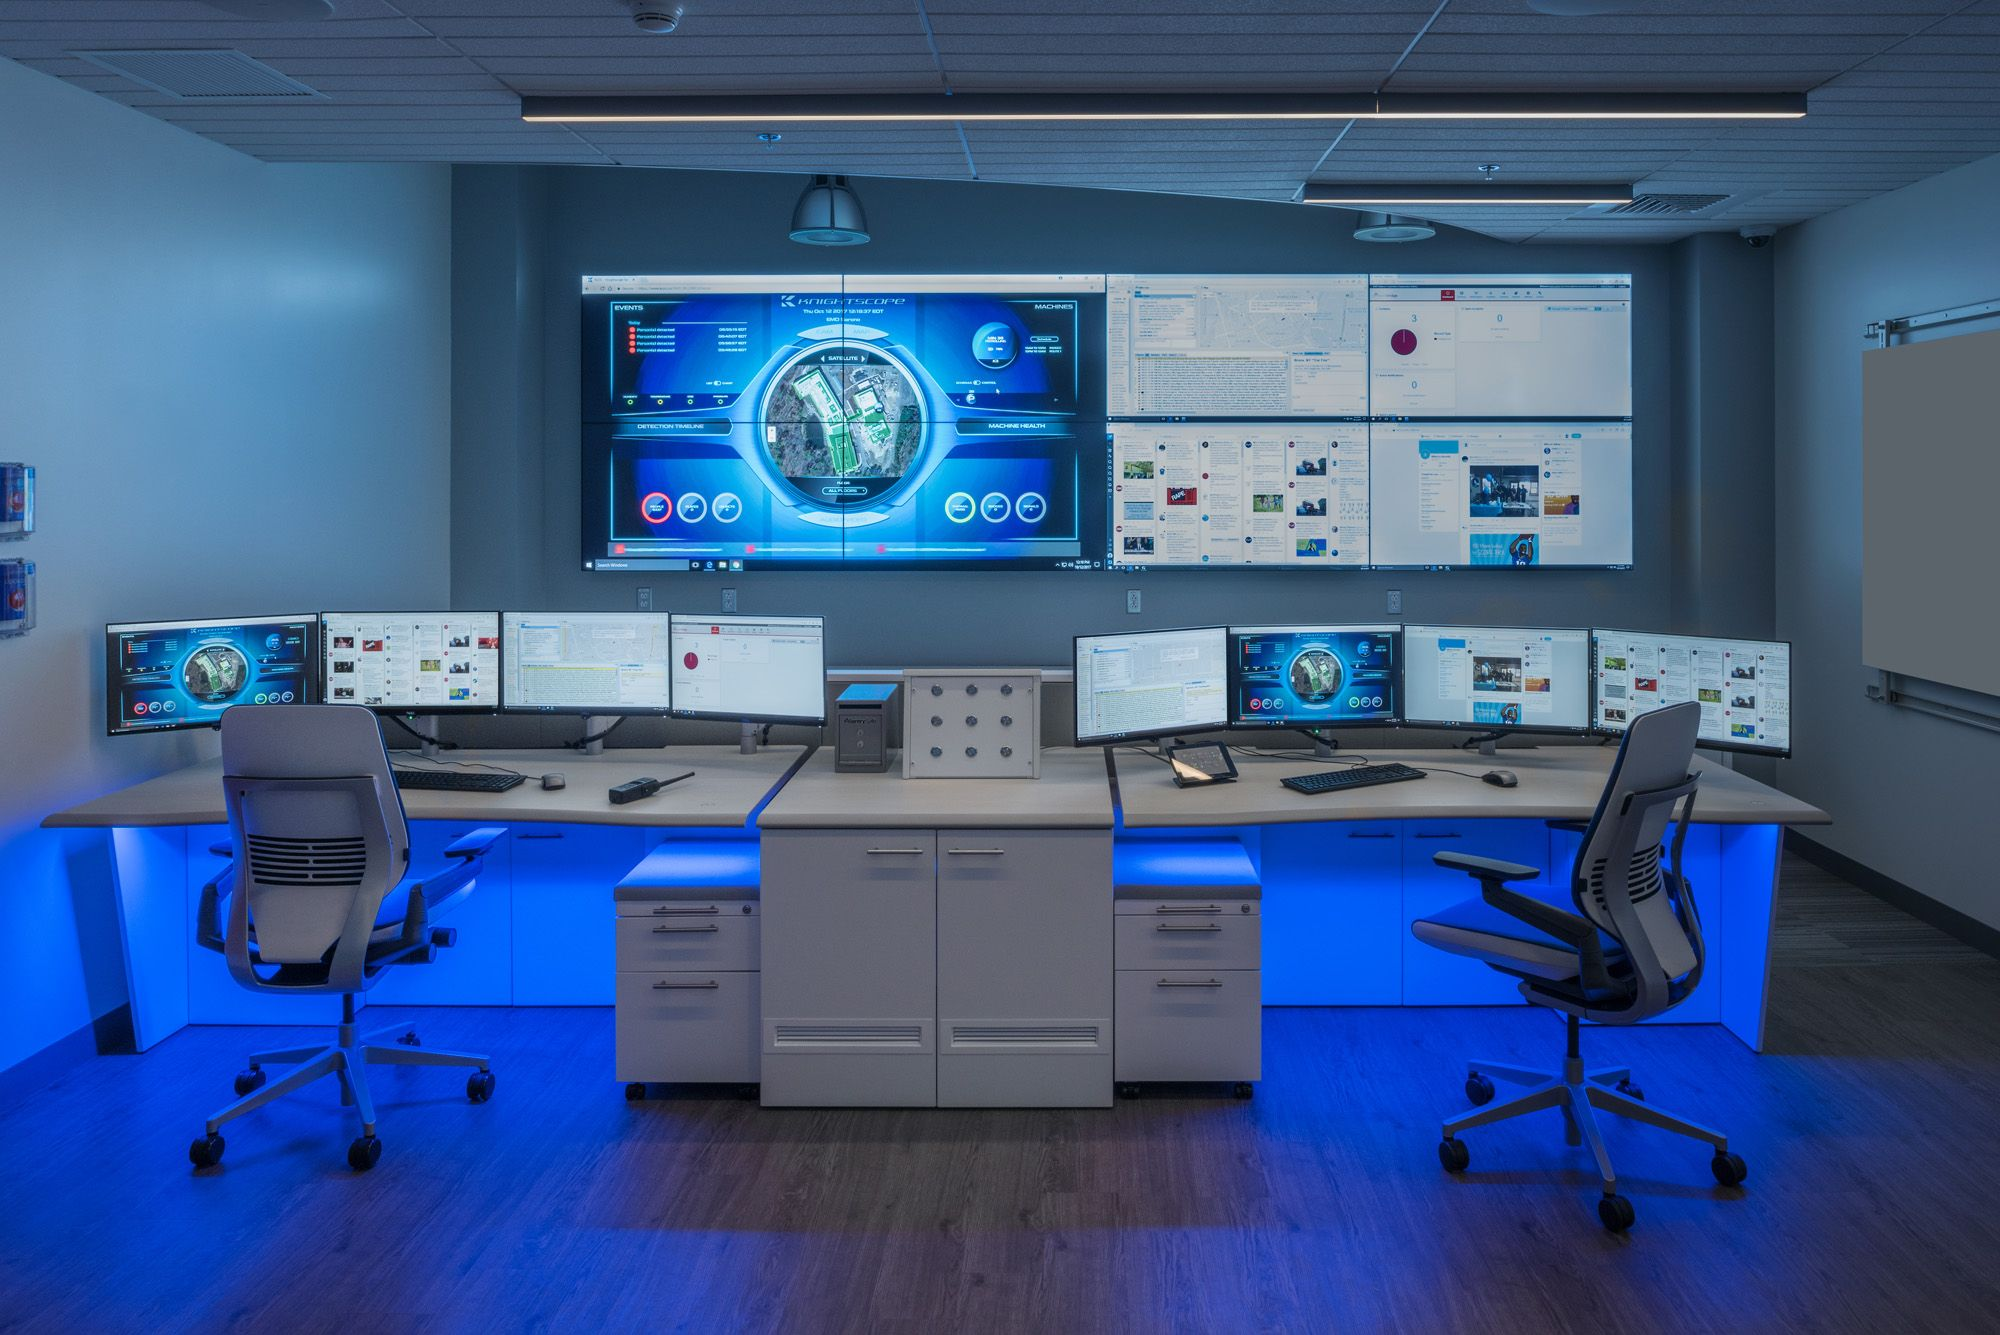 Showpiece Video Wall Integration and Command Center Furniture